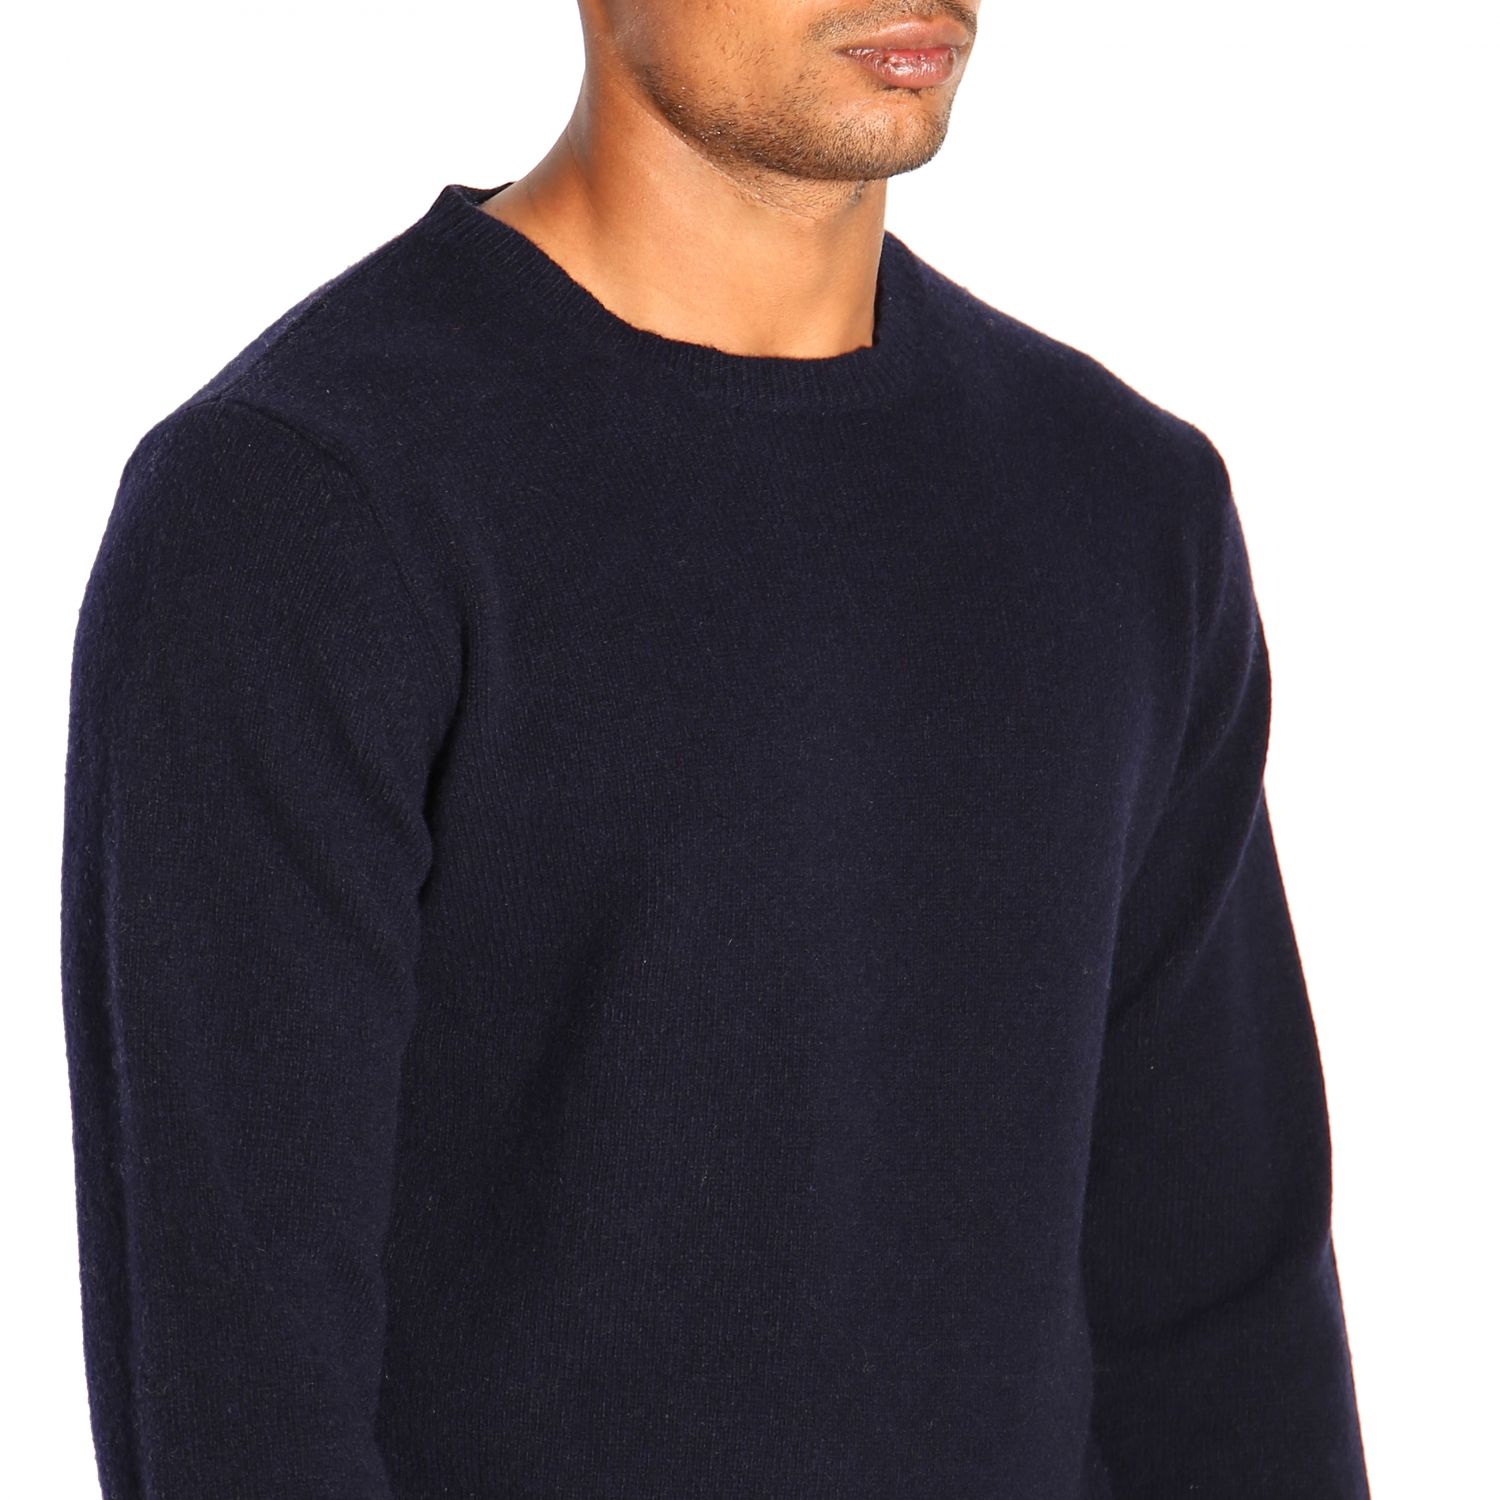 Pullover herren Re_branded blau 5